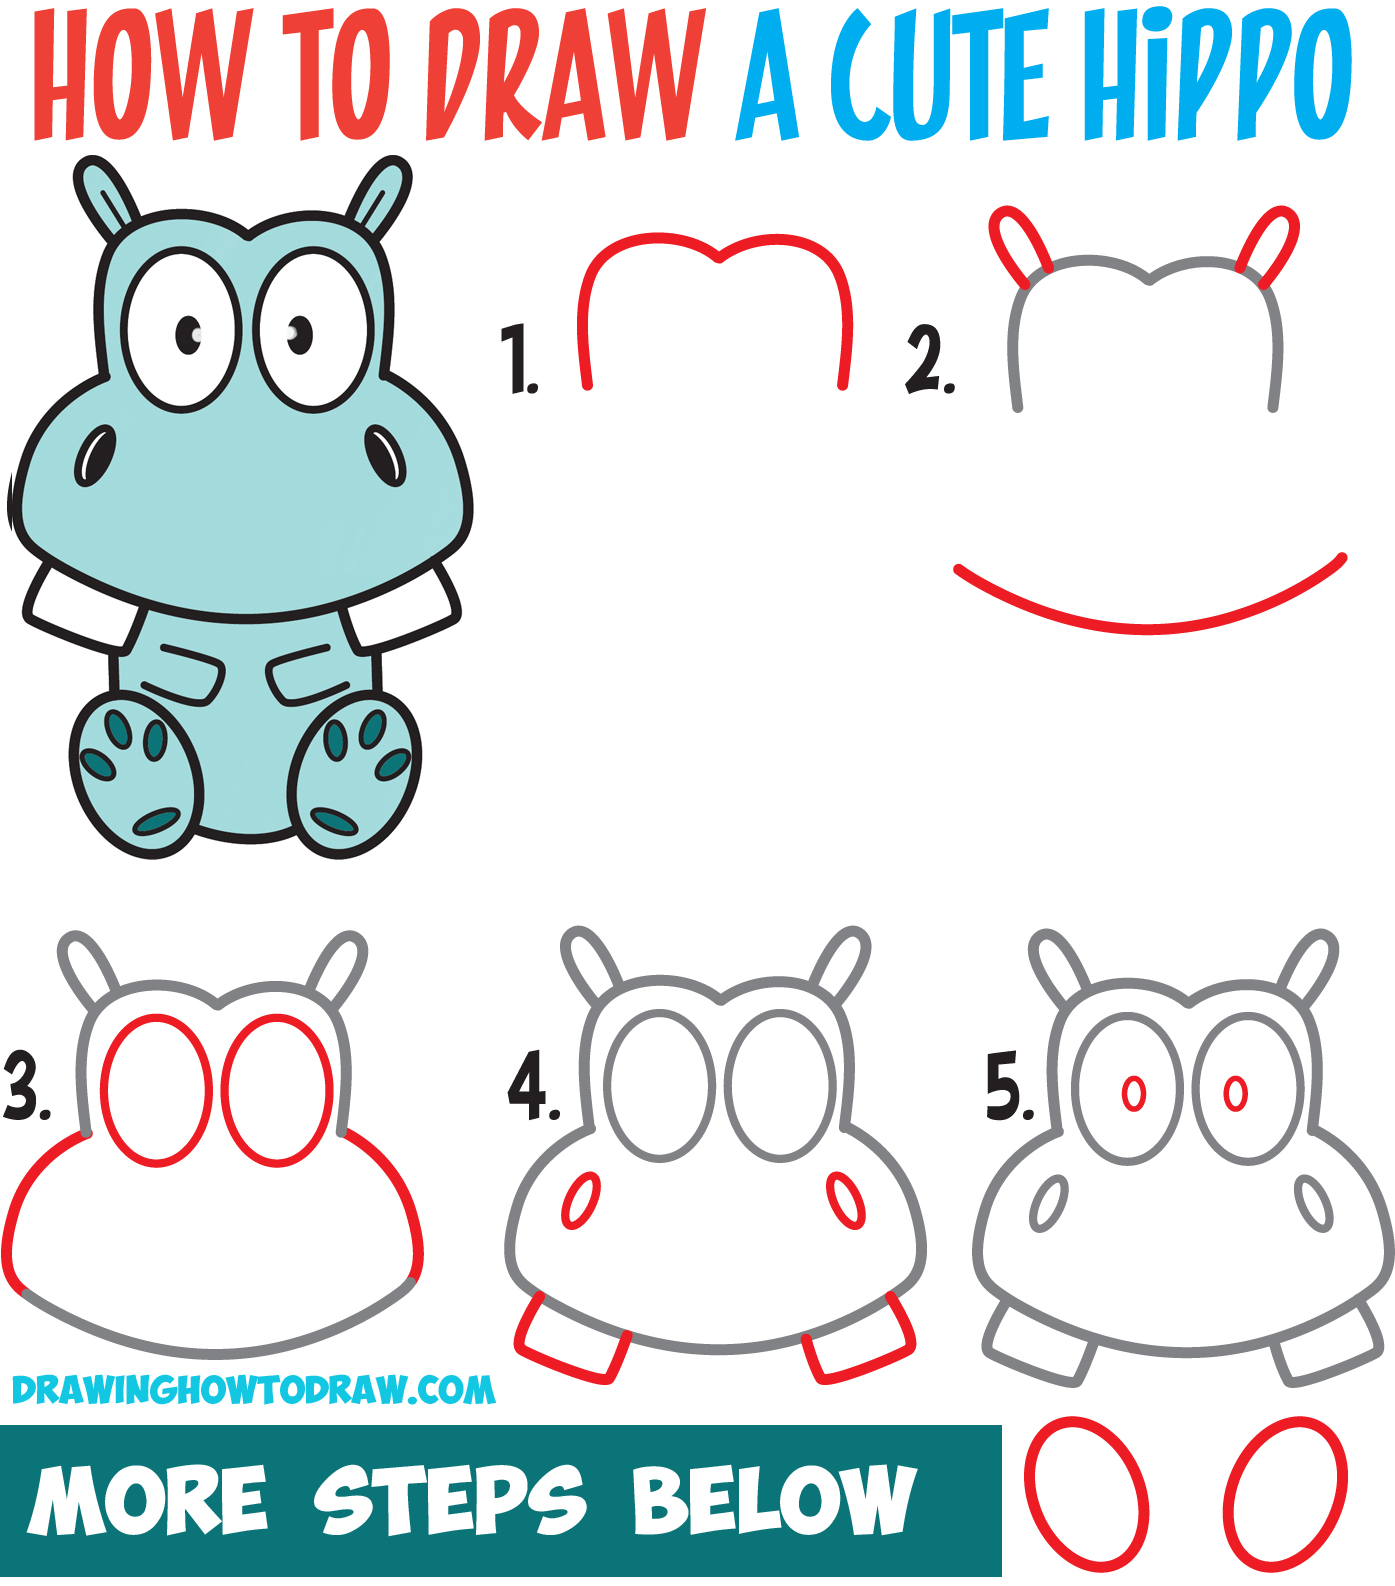 Learn How to Draw a Cute / Kawaii Cartoon Hippo Simple Steps Drawing Lesson for Beginners & Kids